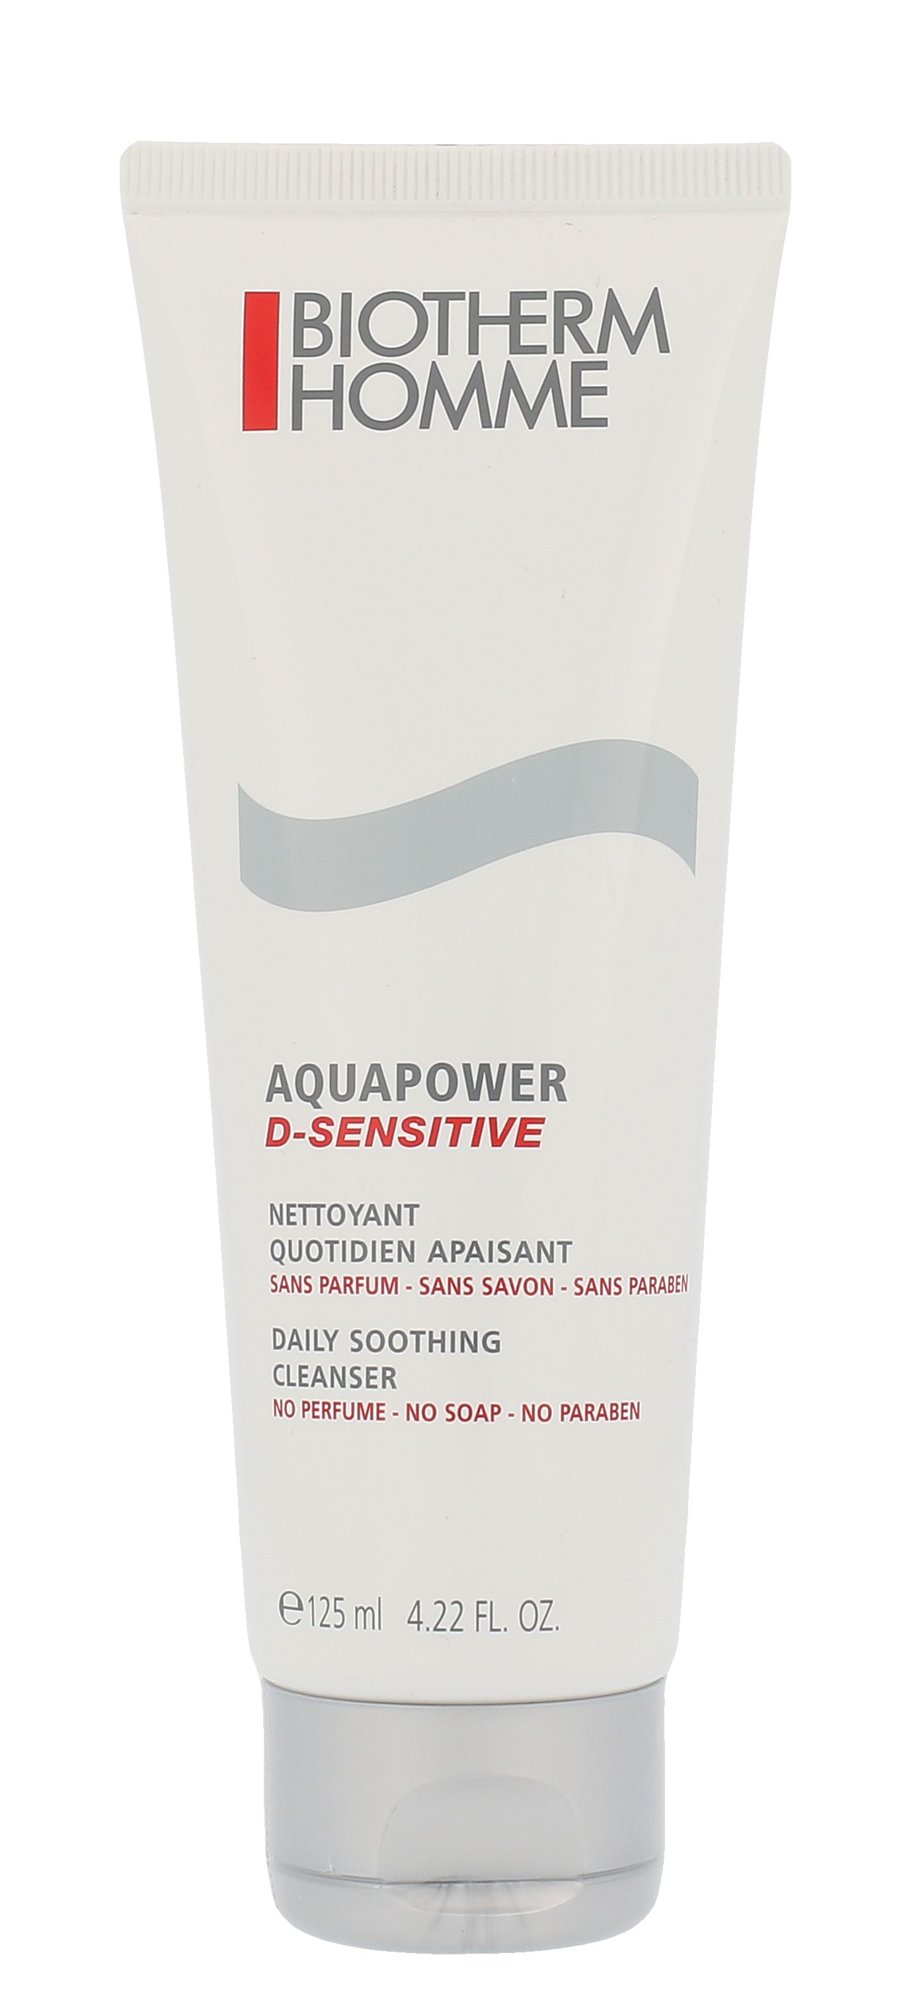 Biotherm Homme Aquapower Cosmetic 125ml  D-Sensitive